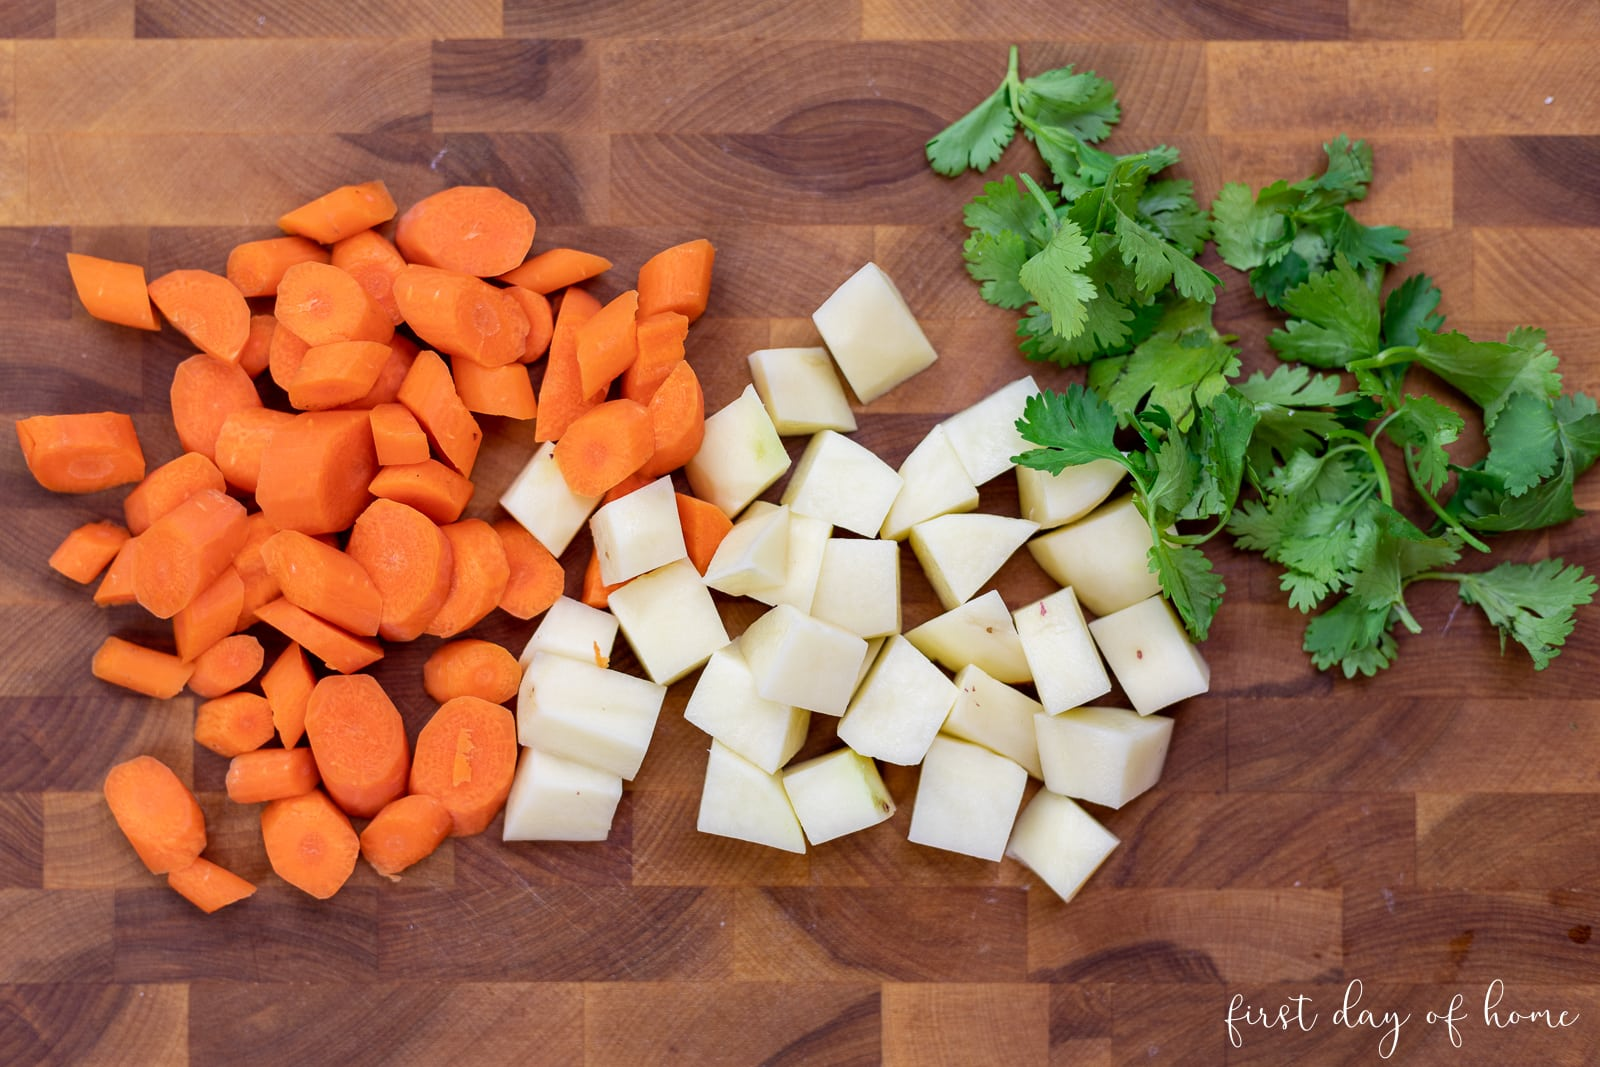 Sliced carrots and diced potatoes with cilantro